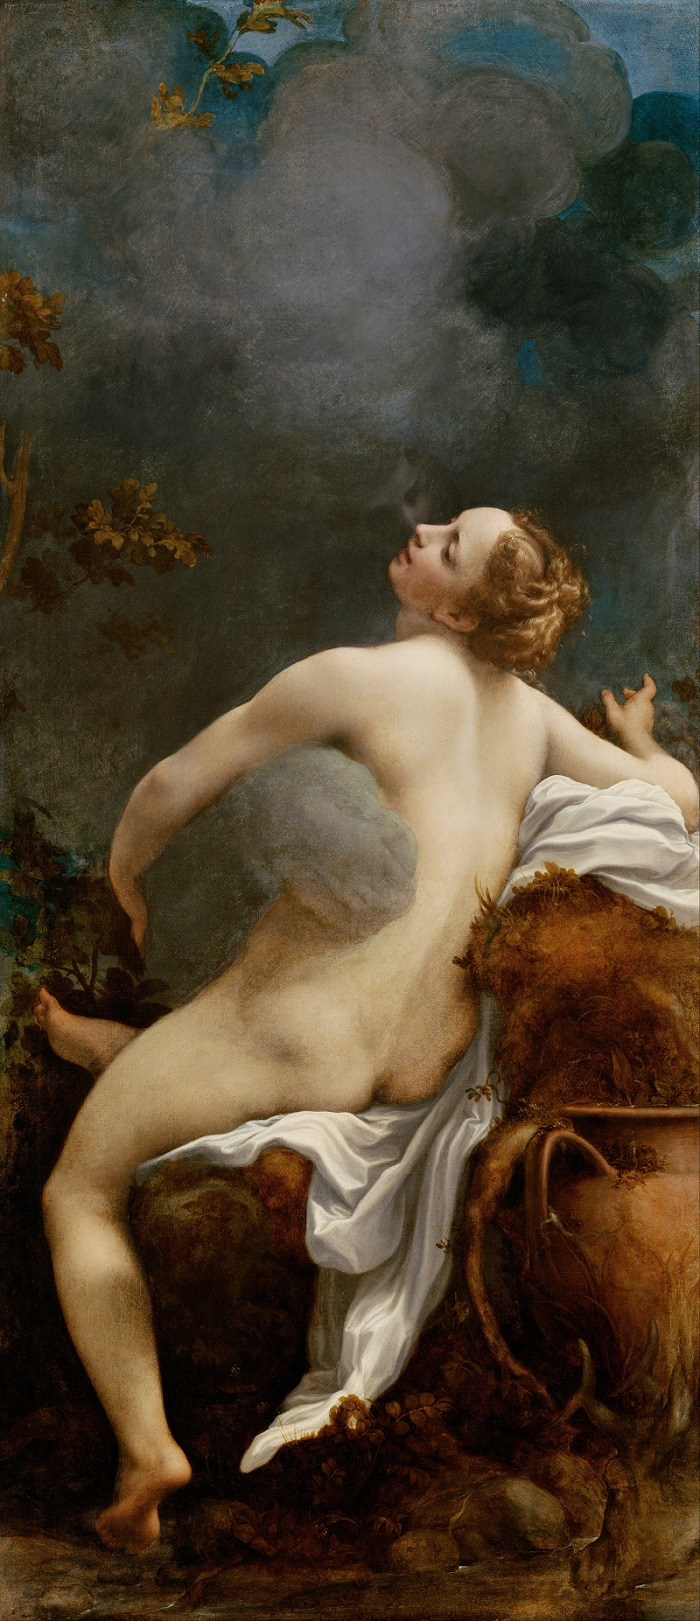 Antonio_Allegri,_called_Correggio_-_Jupiter_and_Io_-_Google_Art_Project.jpg